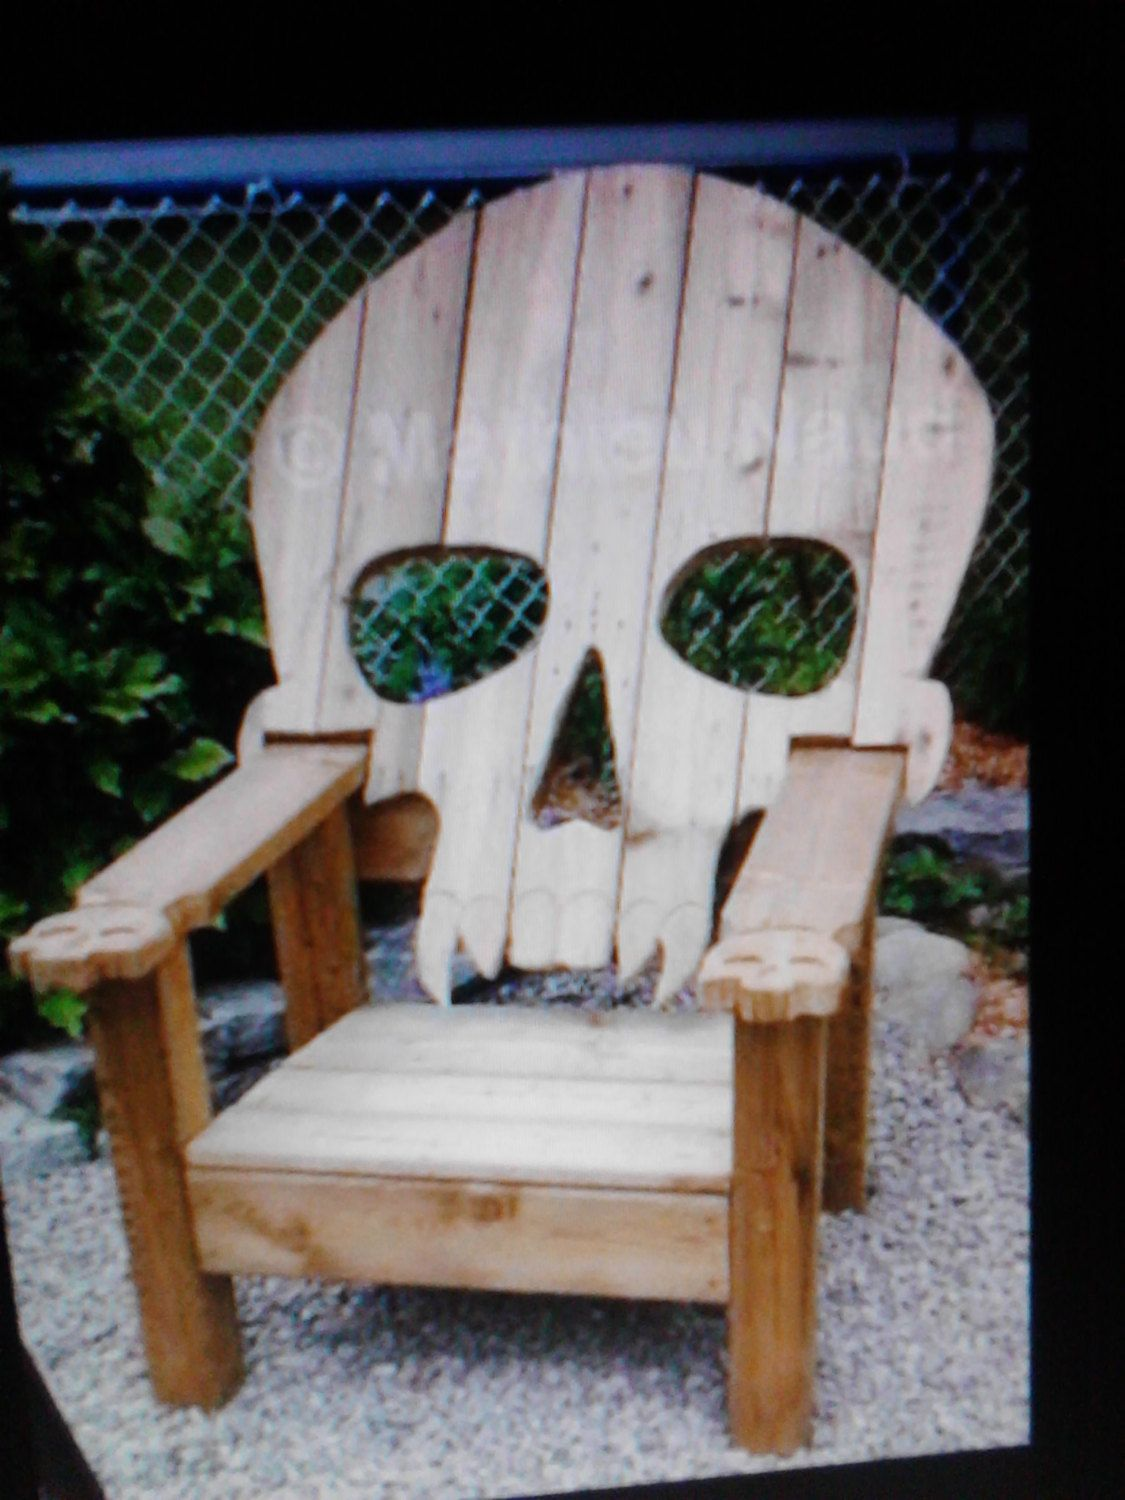 Rattan Sofa Luanda Skull Chair Adirondack Chair Yard Furniture Solid Wood